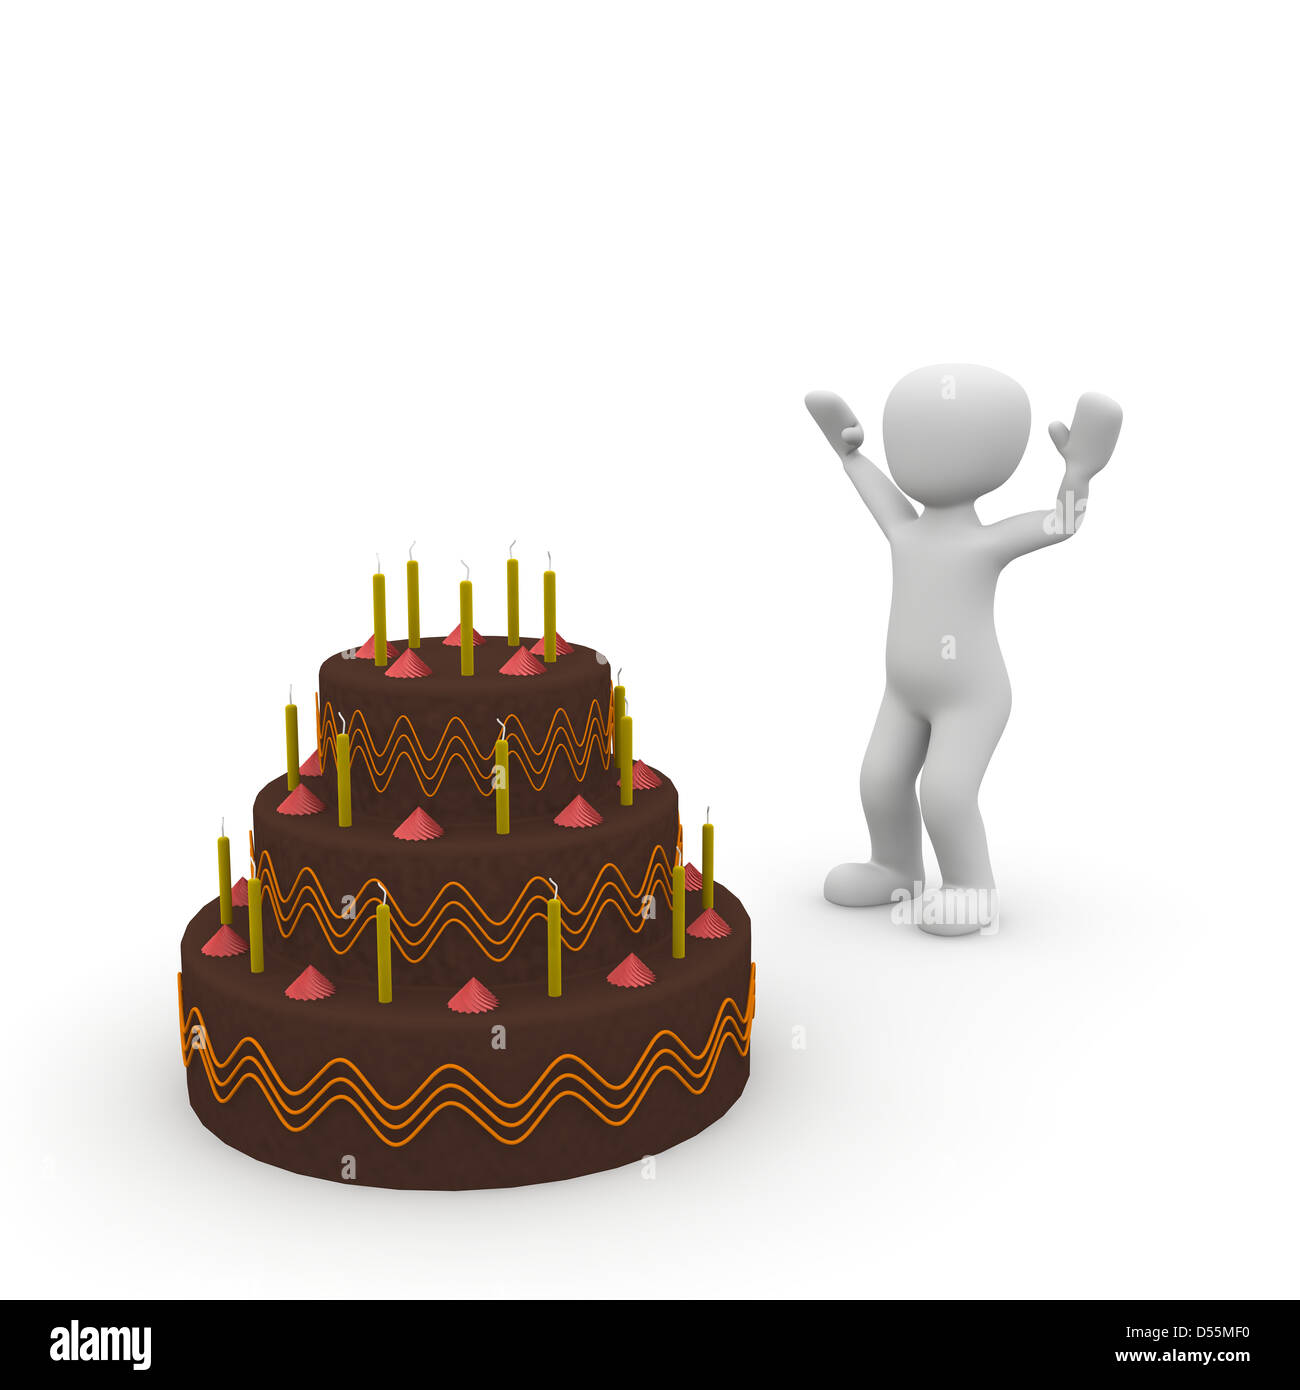 A Huge Birthday Cake Made Of Chocolate Is Delicious Stock Photo